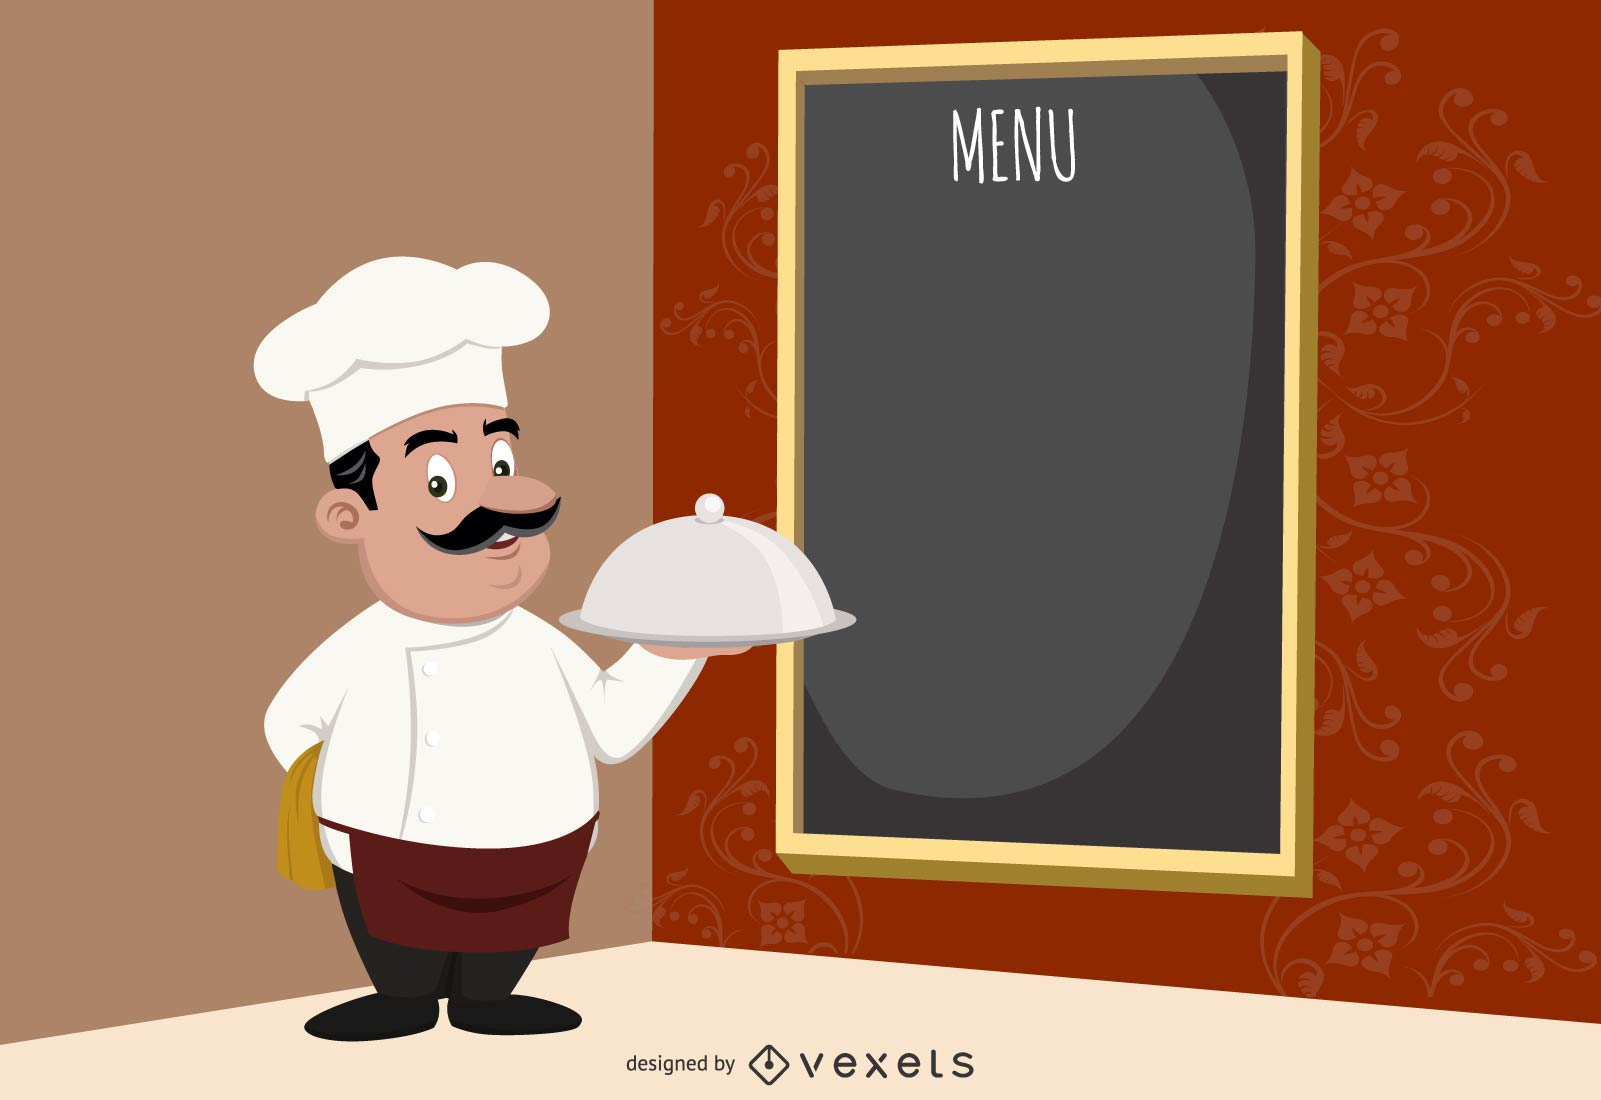 Menu design with illustrated chef